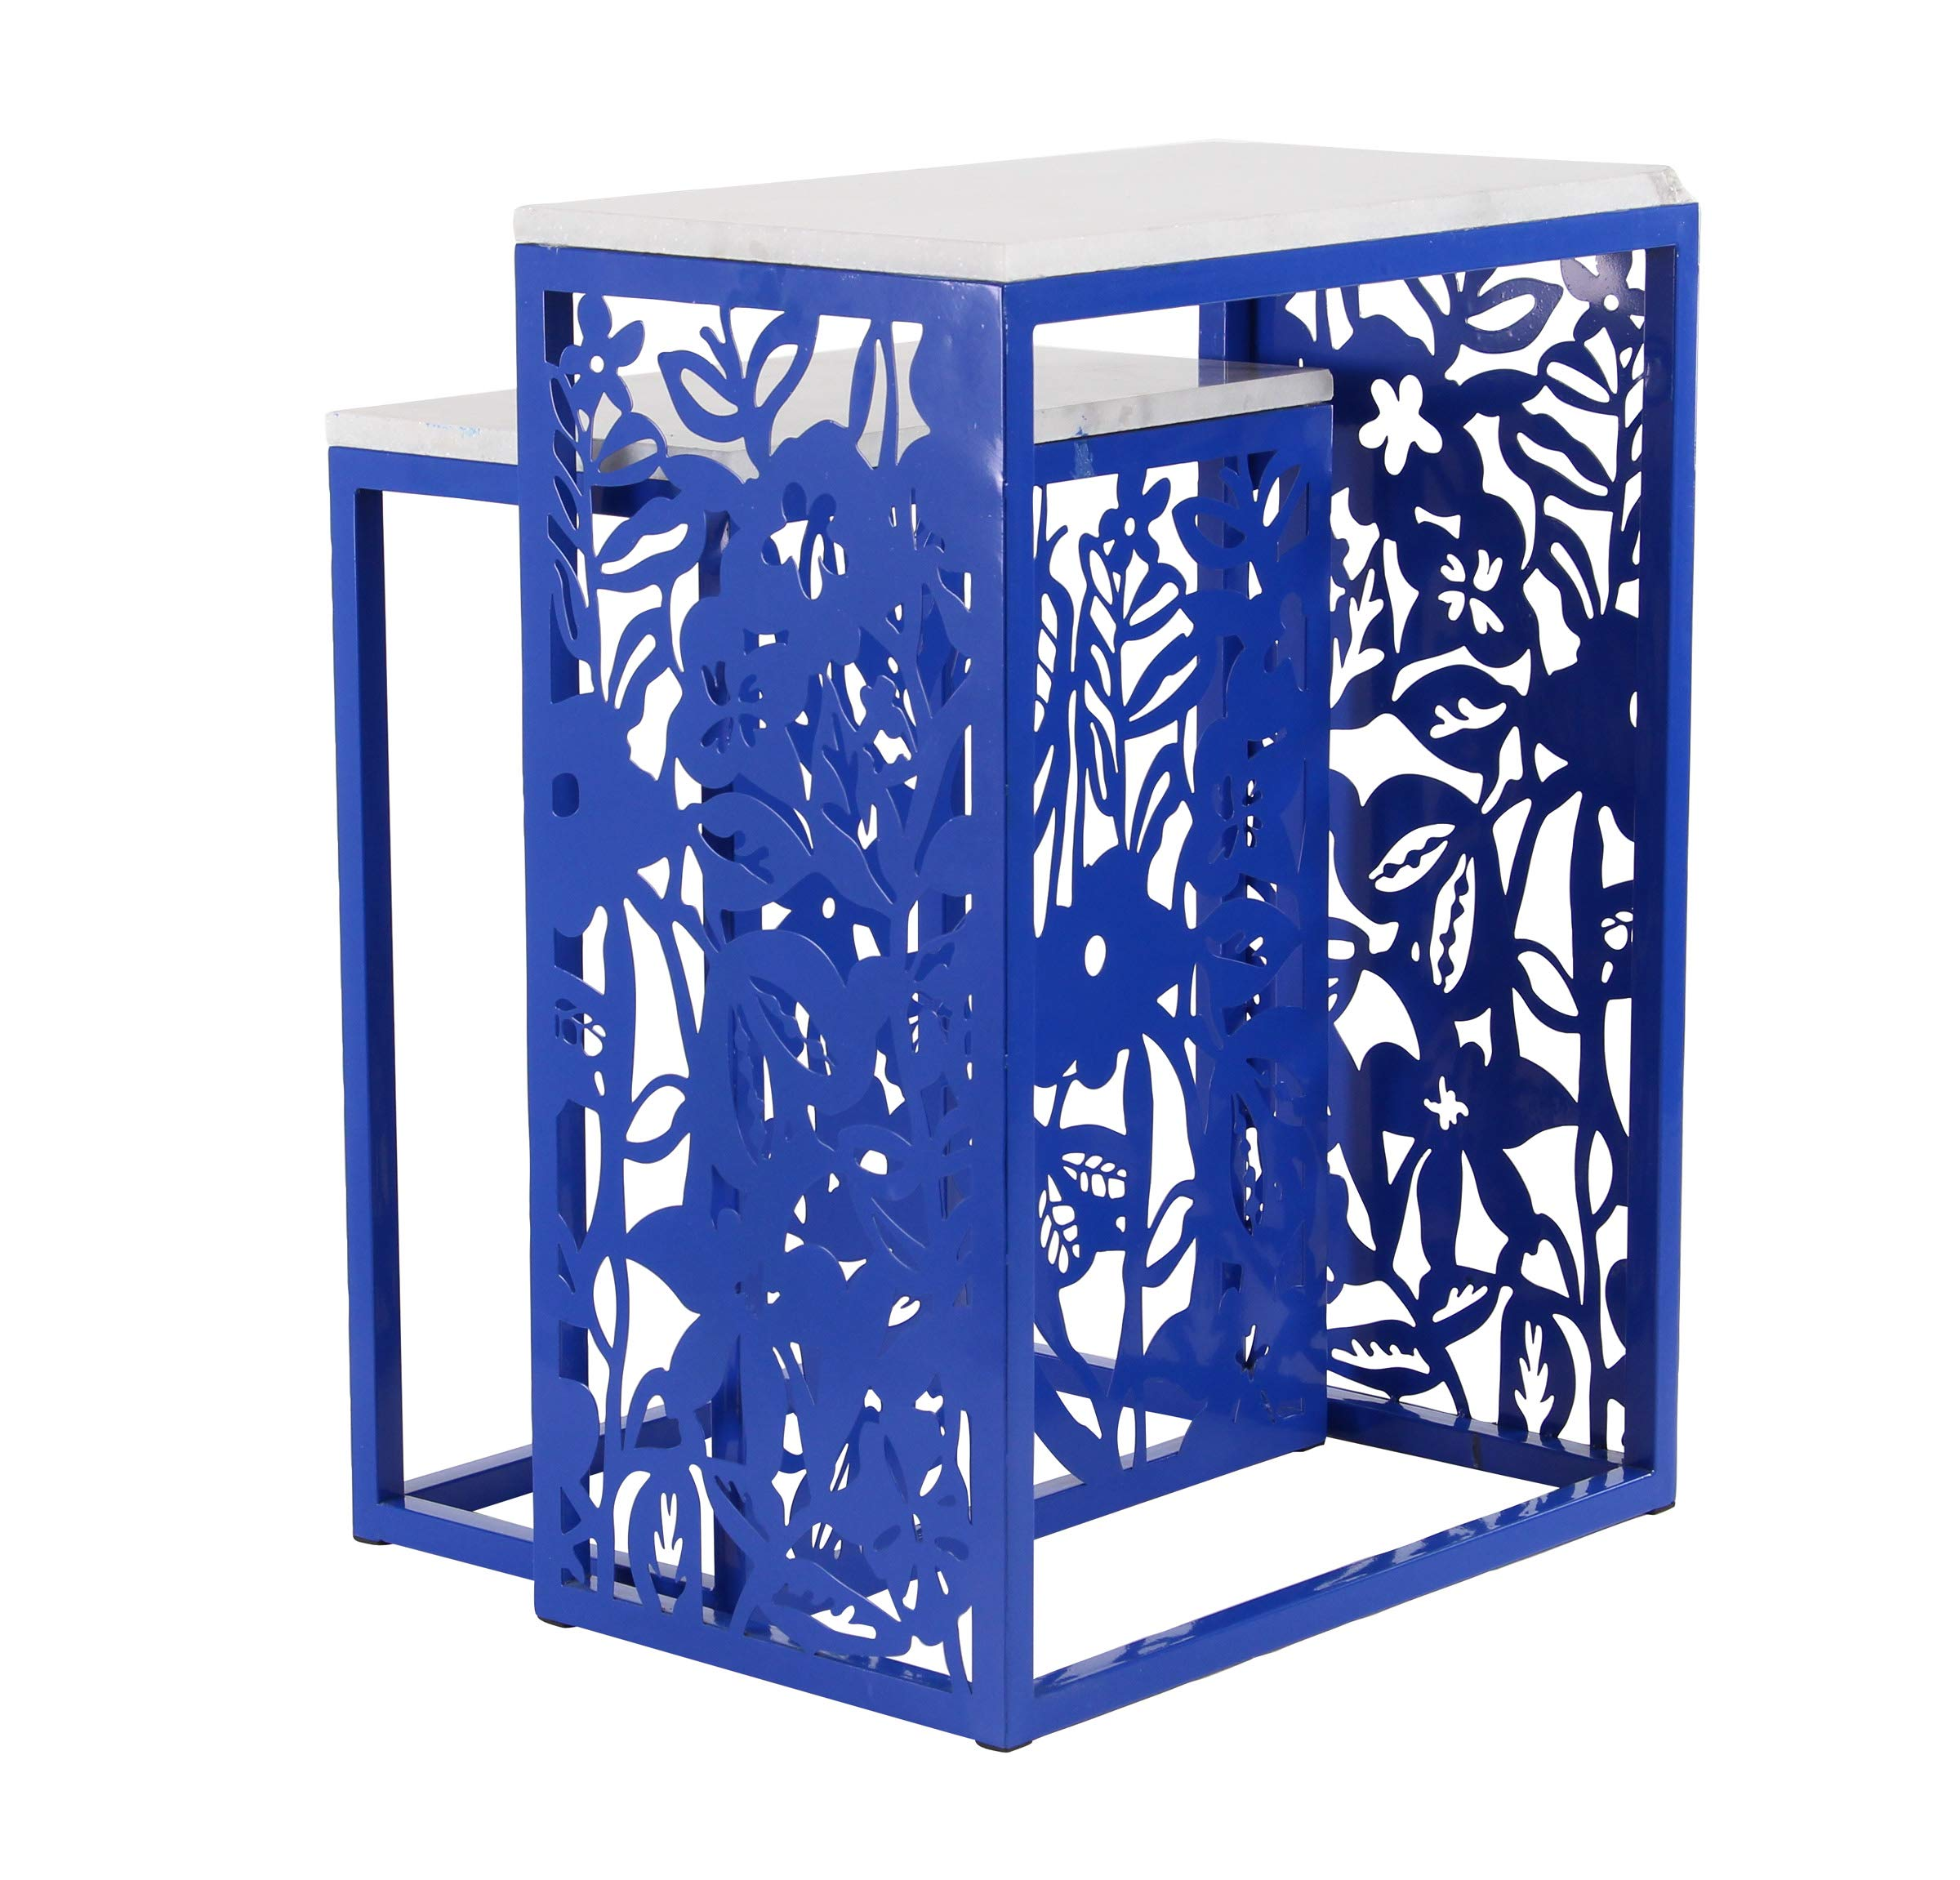 Deco 79 Modern Floral Nesting End Tables, 12''W x 27''H, White, Blue by Deco 79